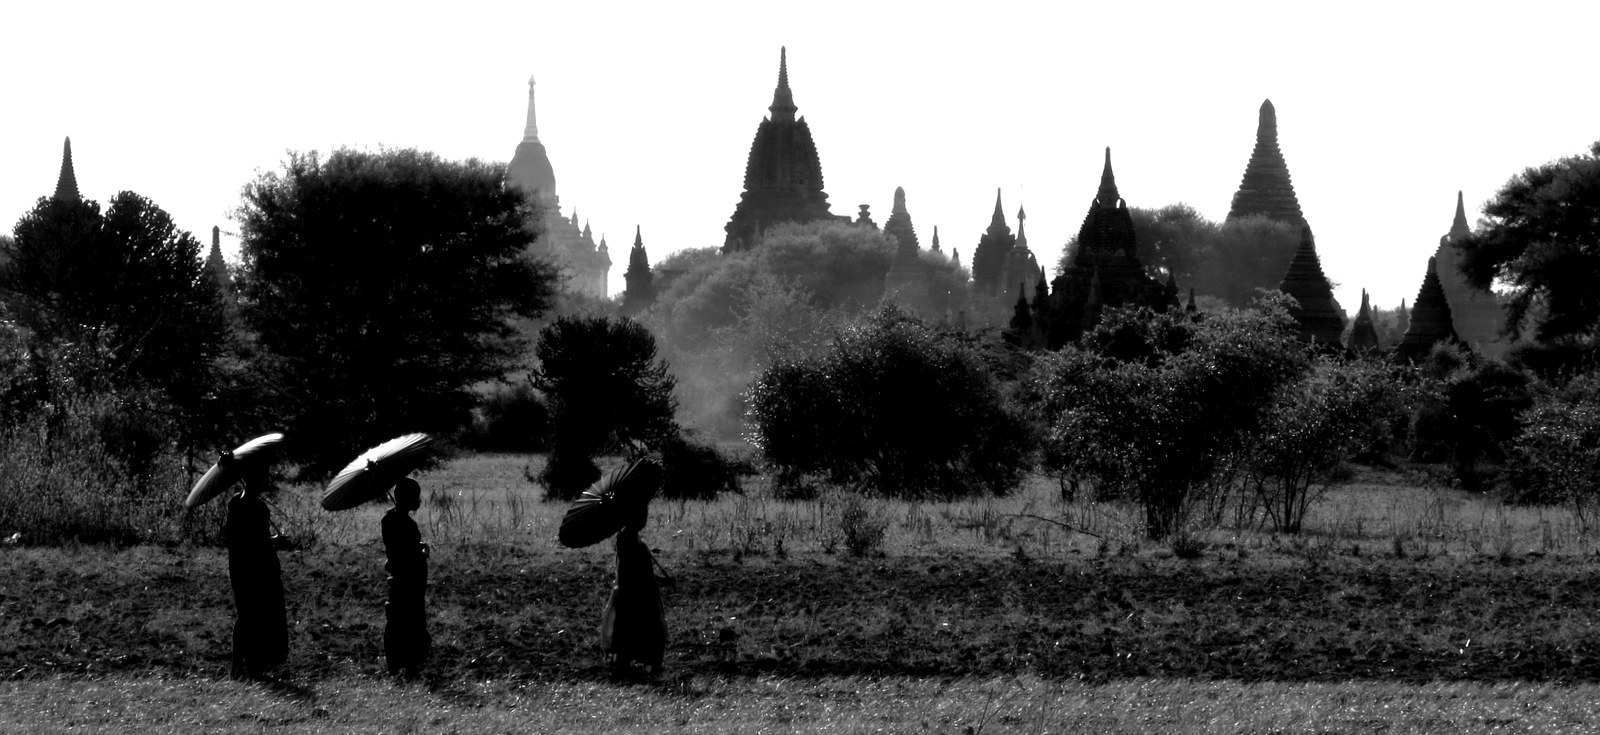 monochrome-temples-and-monks-with-parasols